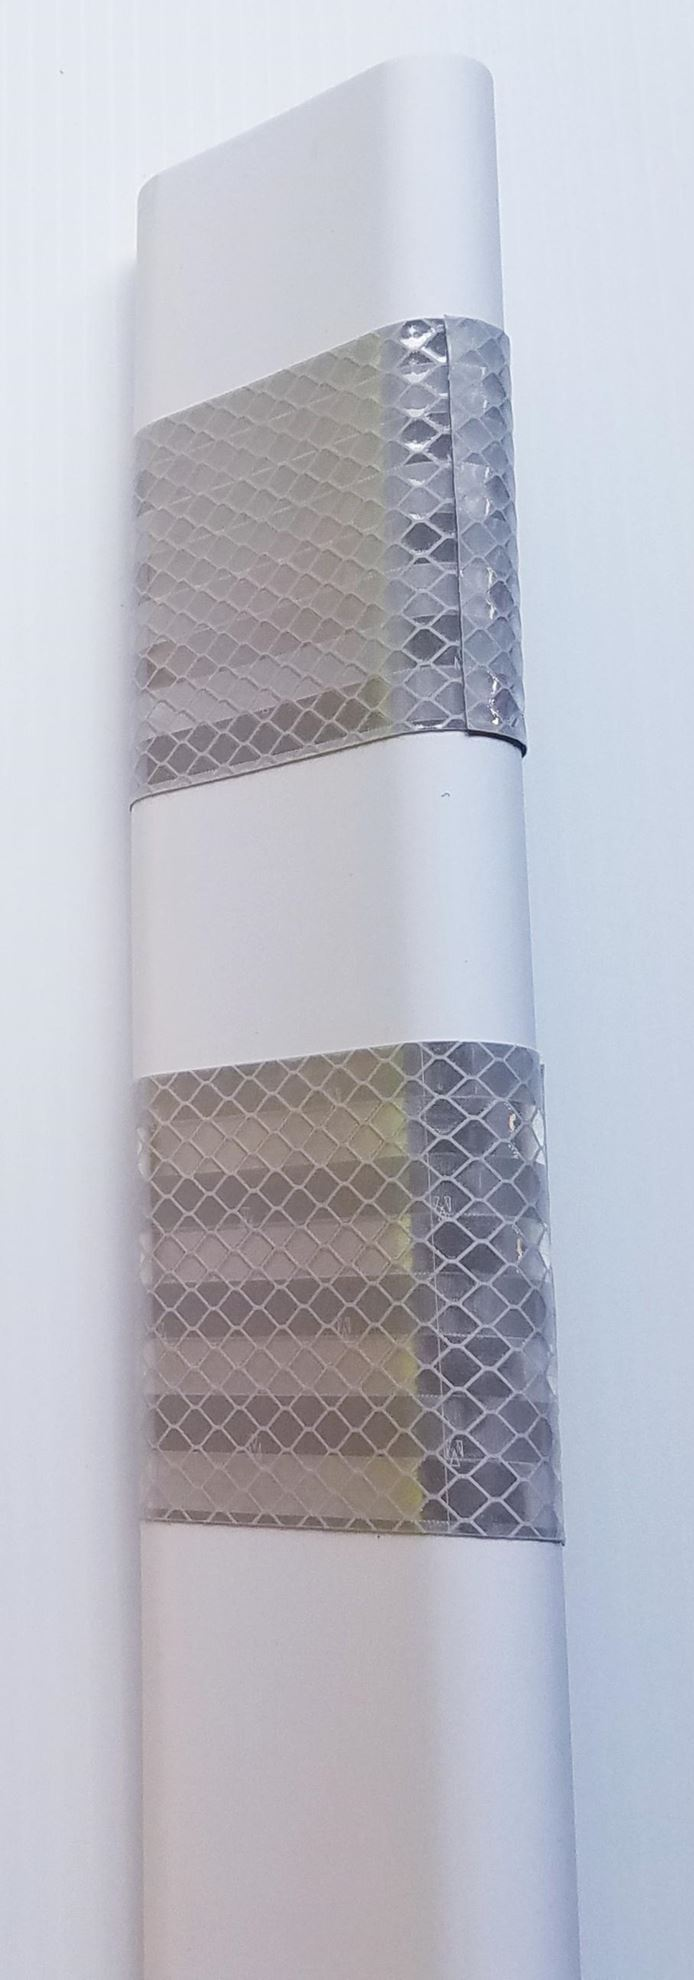 Picture of Flexi-Guide FG336 UR Delineator Post Reflective -Top Only